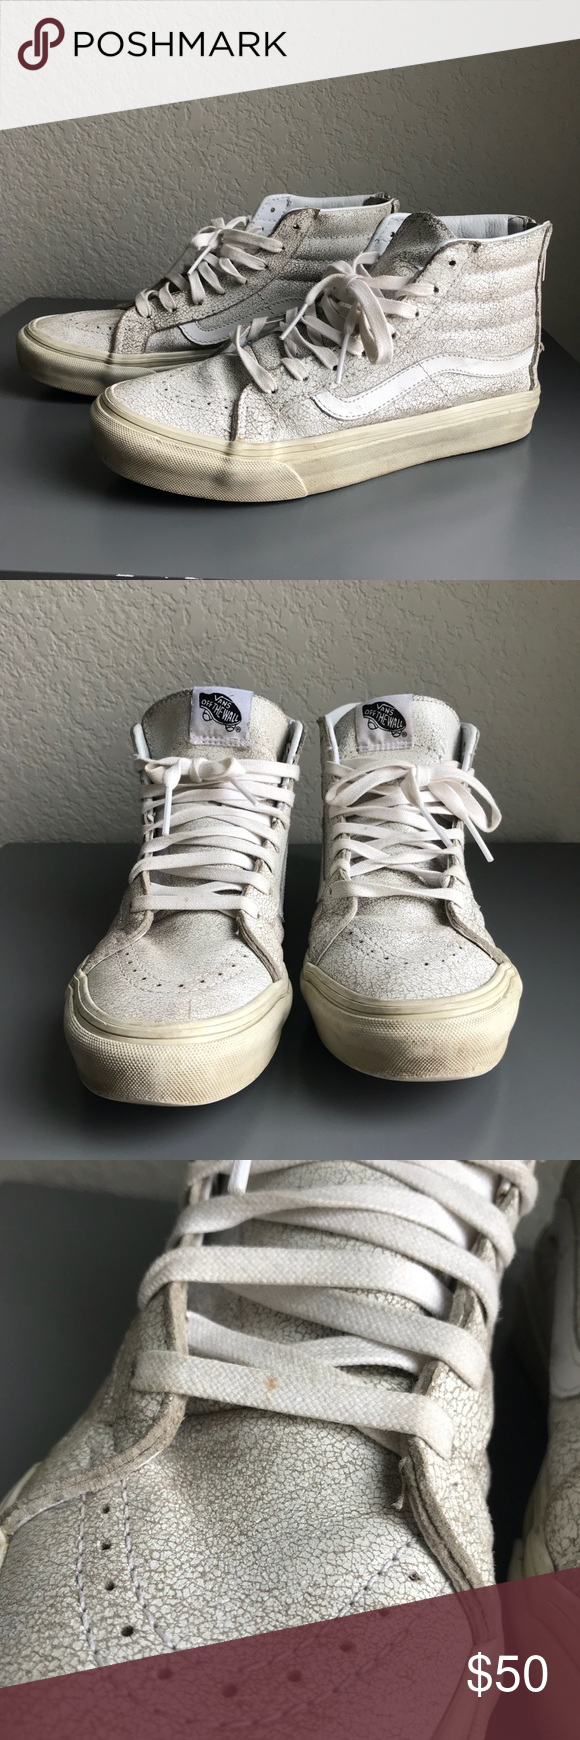 Vans Sk8 Hi White Cracked Leather High Top Sneaker Vans Sk8 Hi White  Cracked Leather High Top Sneaker. Great used condition c208877a9